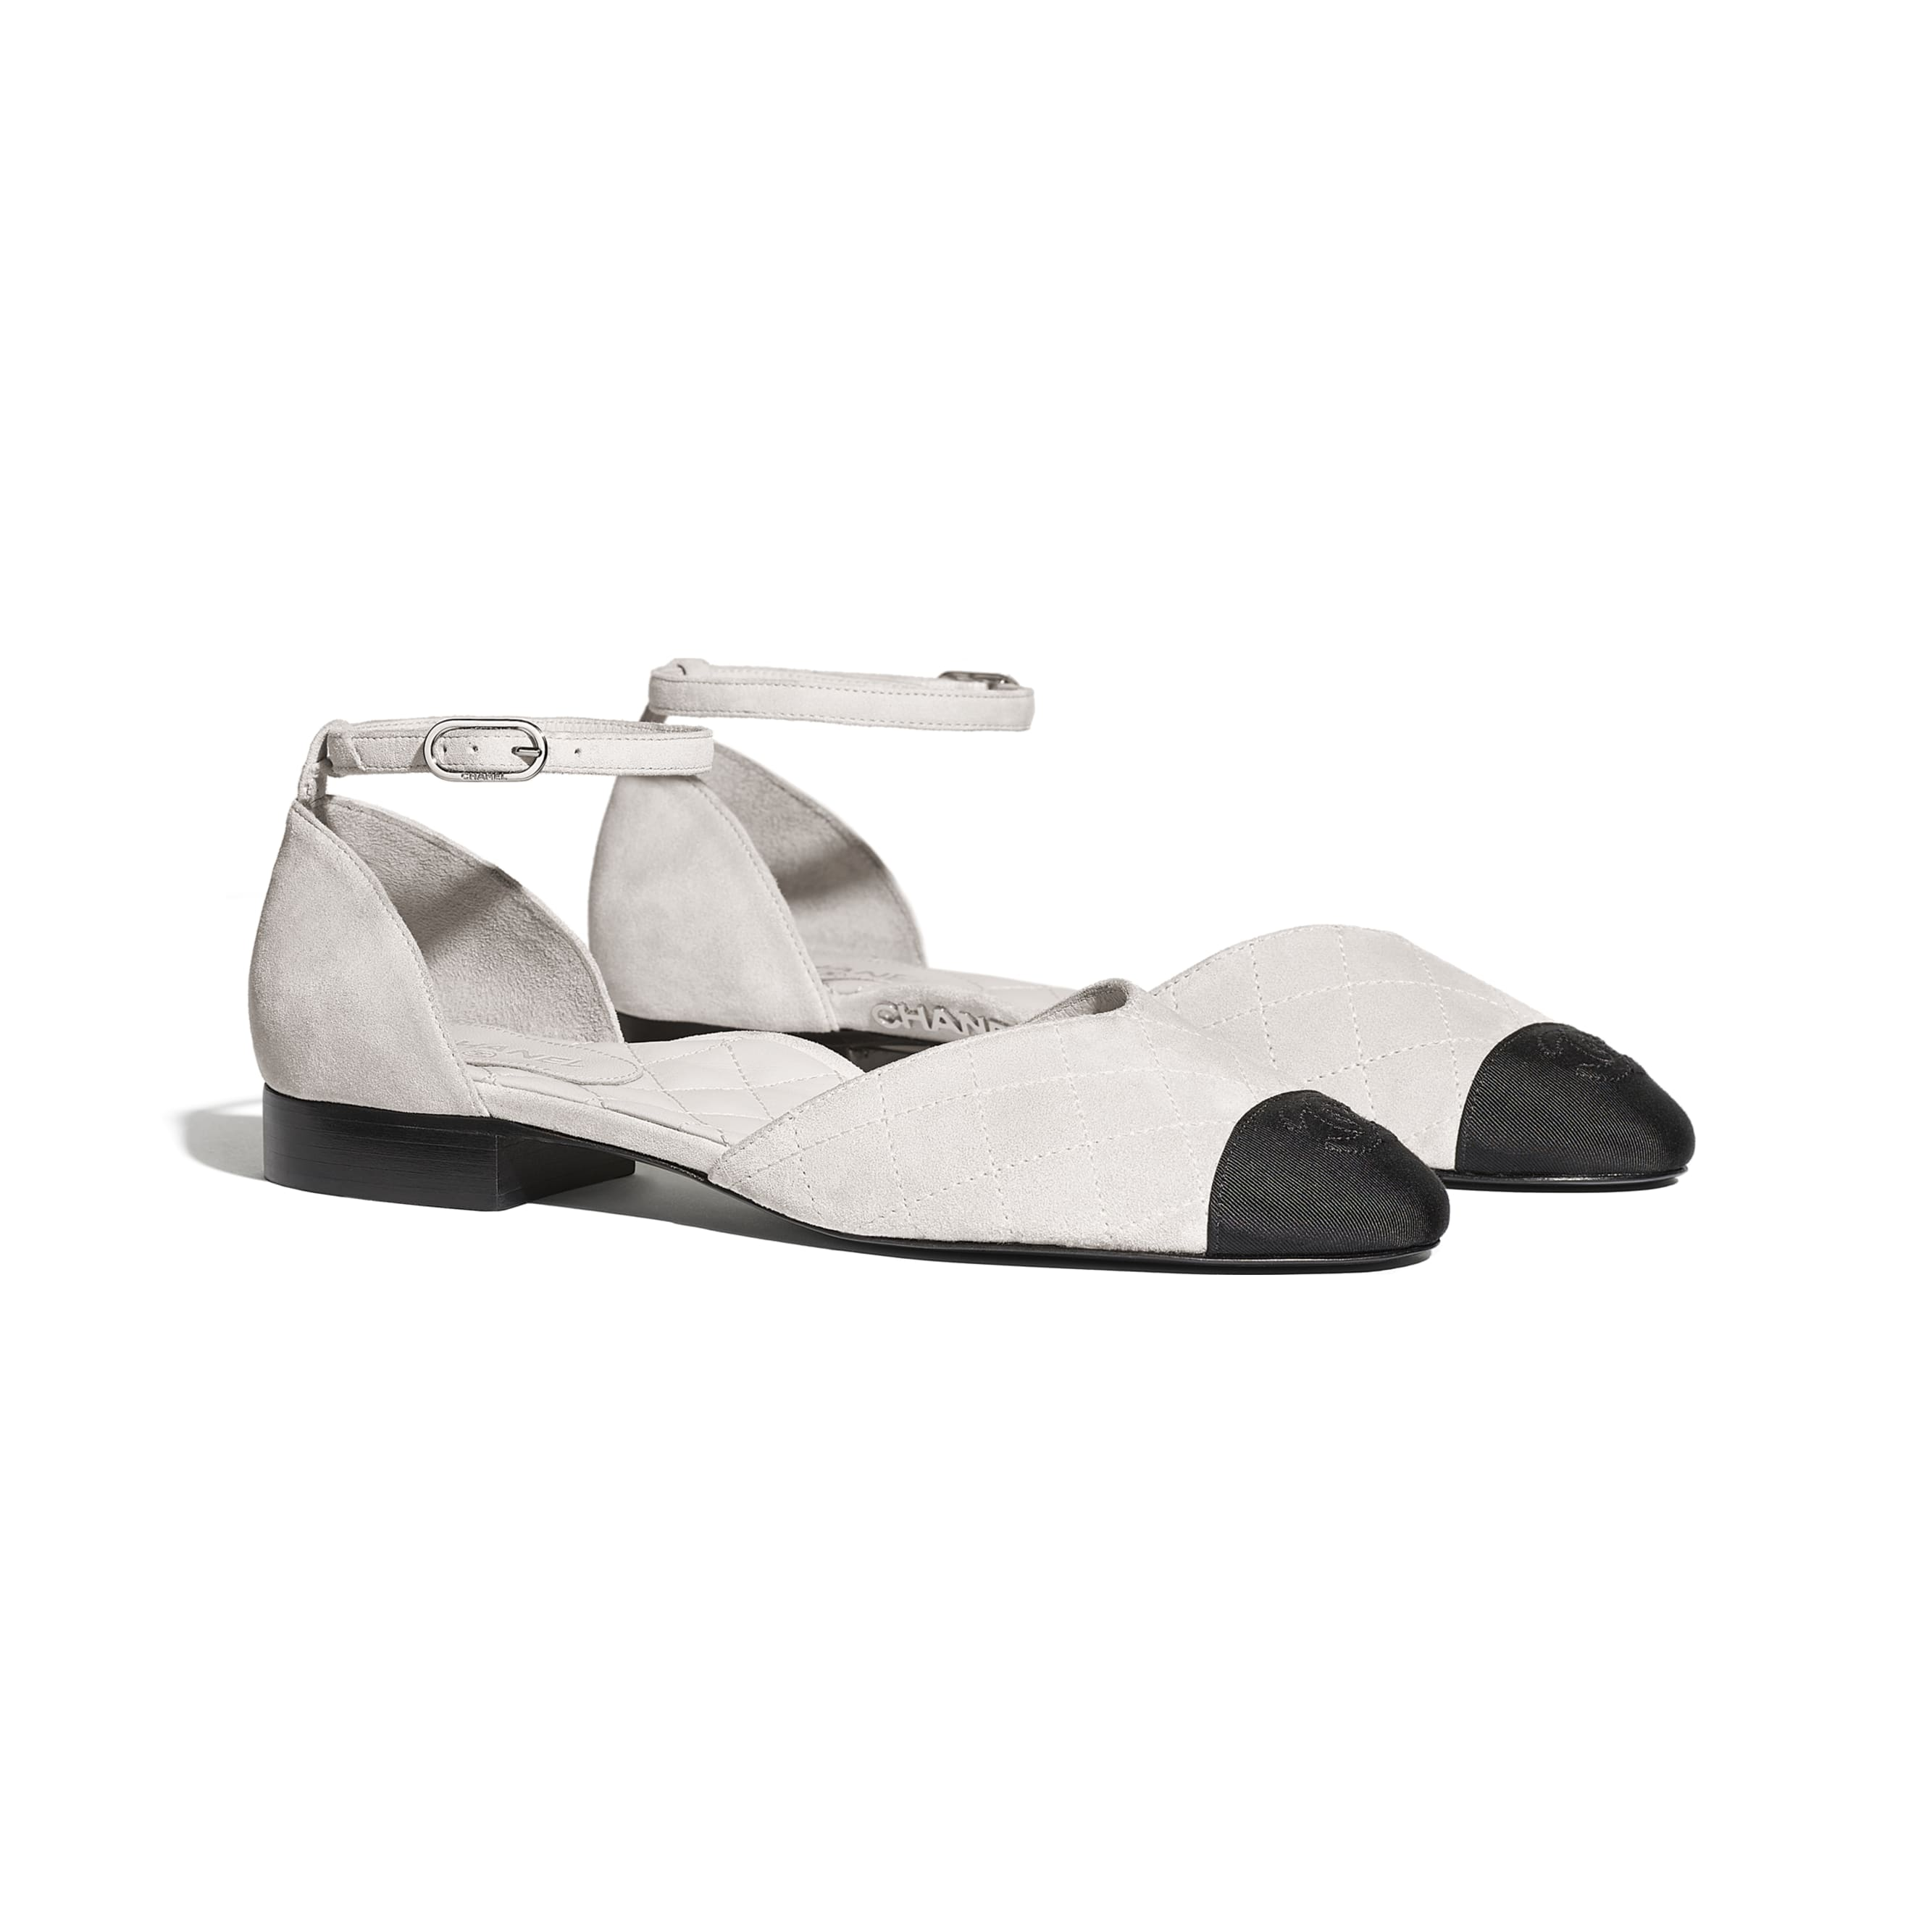 Mary Janes - Light Gray & Black - Suede Calfskin & Grosgrain - CHANEL - Alternative view - see standard sized version